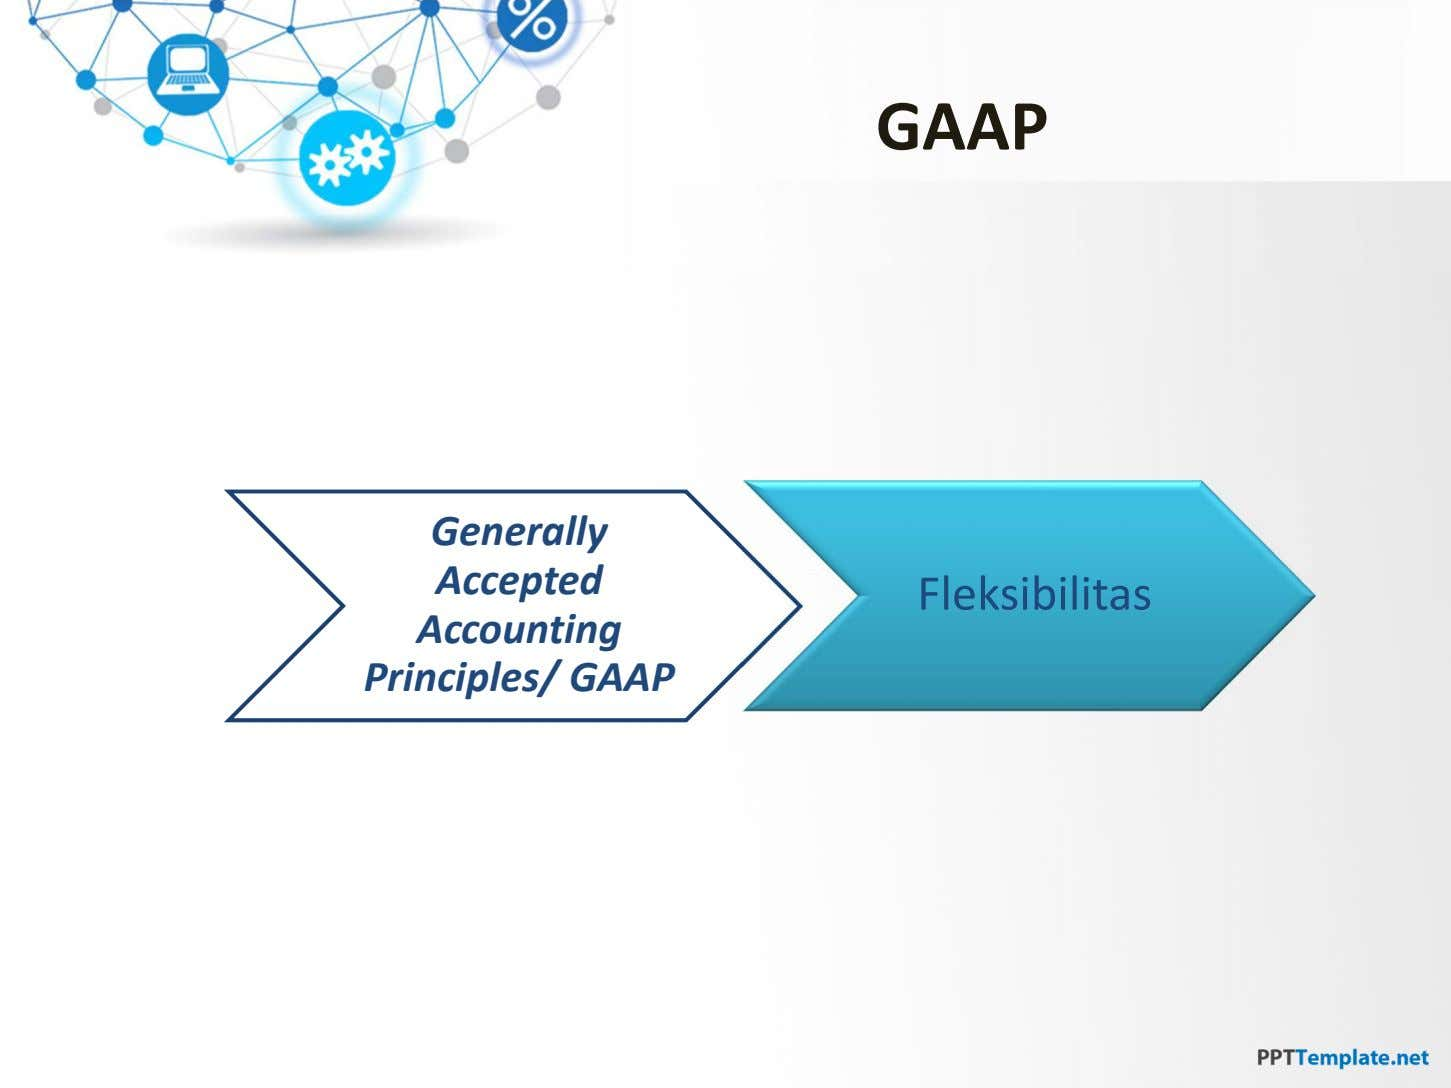 GAAP Generally Accepted Accounting Principles/ GAAP Fleksibilitas